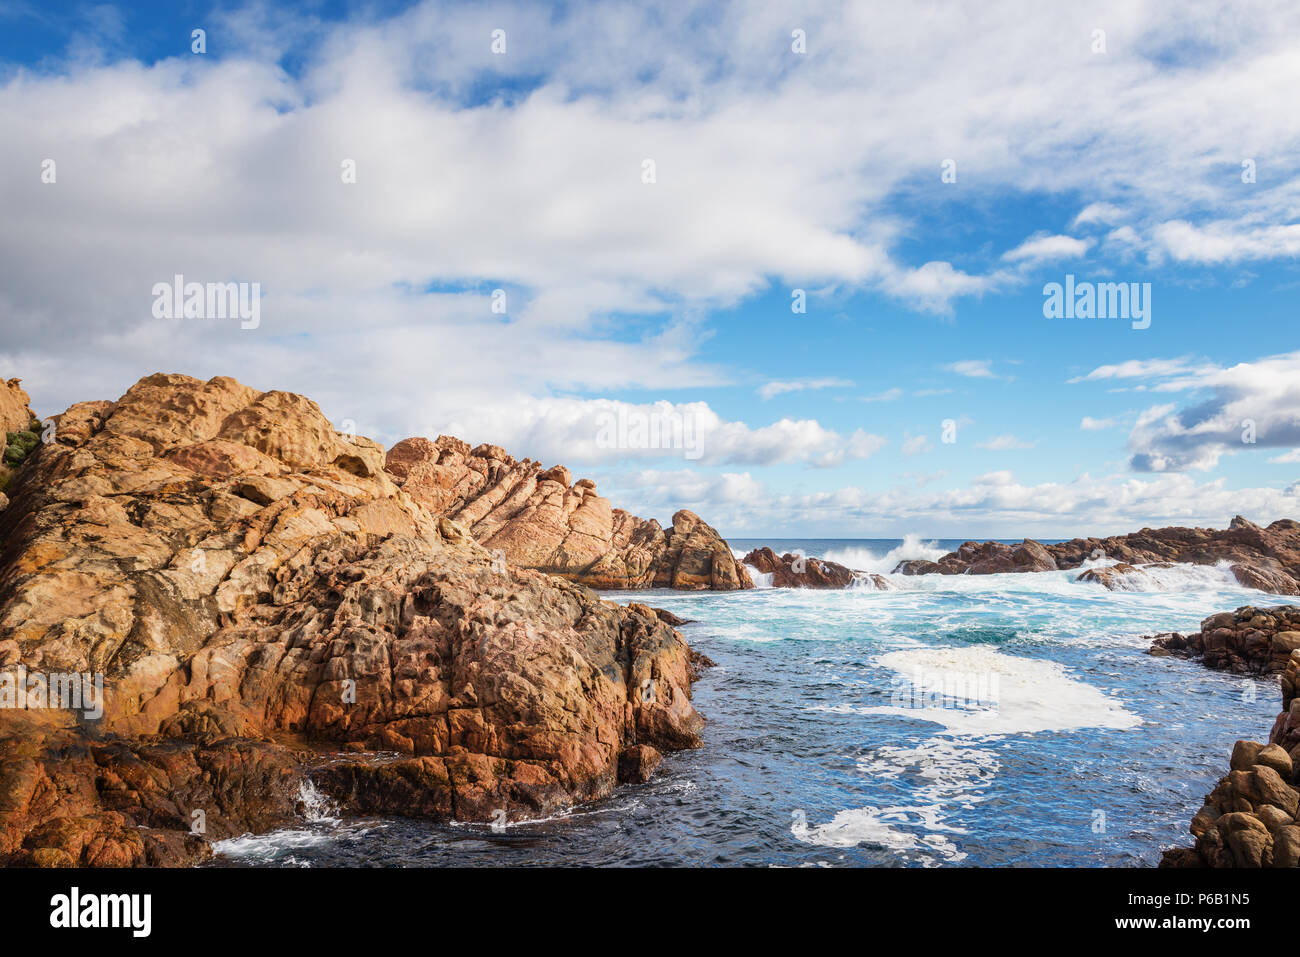 famous rocks in  canal of the coast in Busselton is a city on the southwest tip of Western Australia - Stock Image